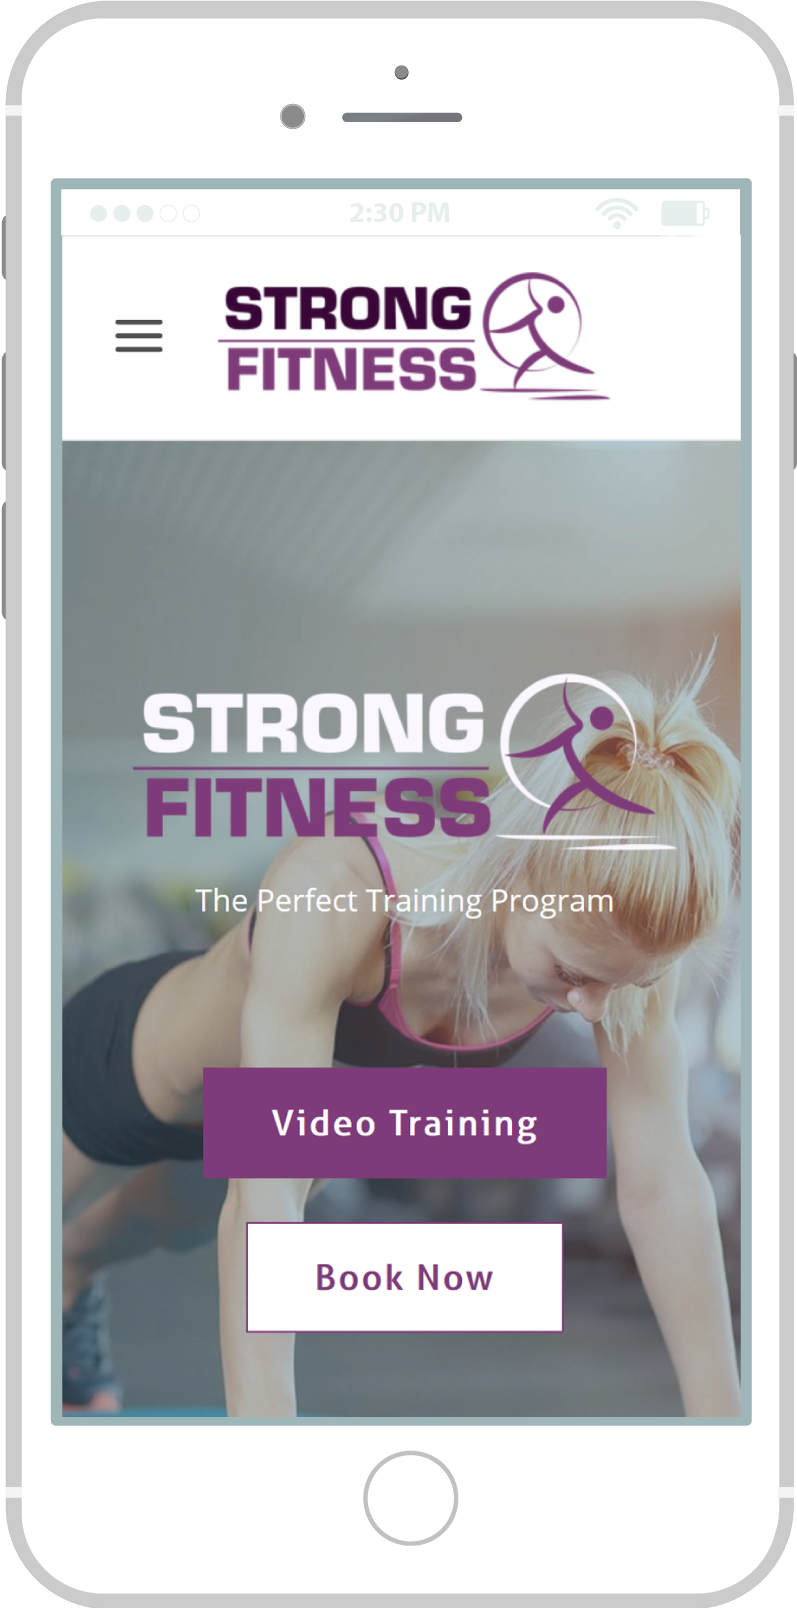 All-In-One Online Fitness Studio Website - Strong Fitness Mobile view 1 Example